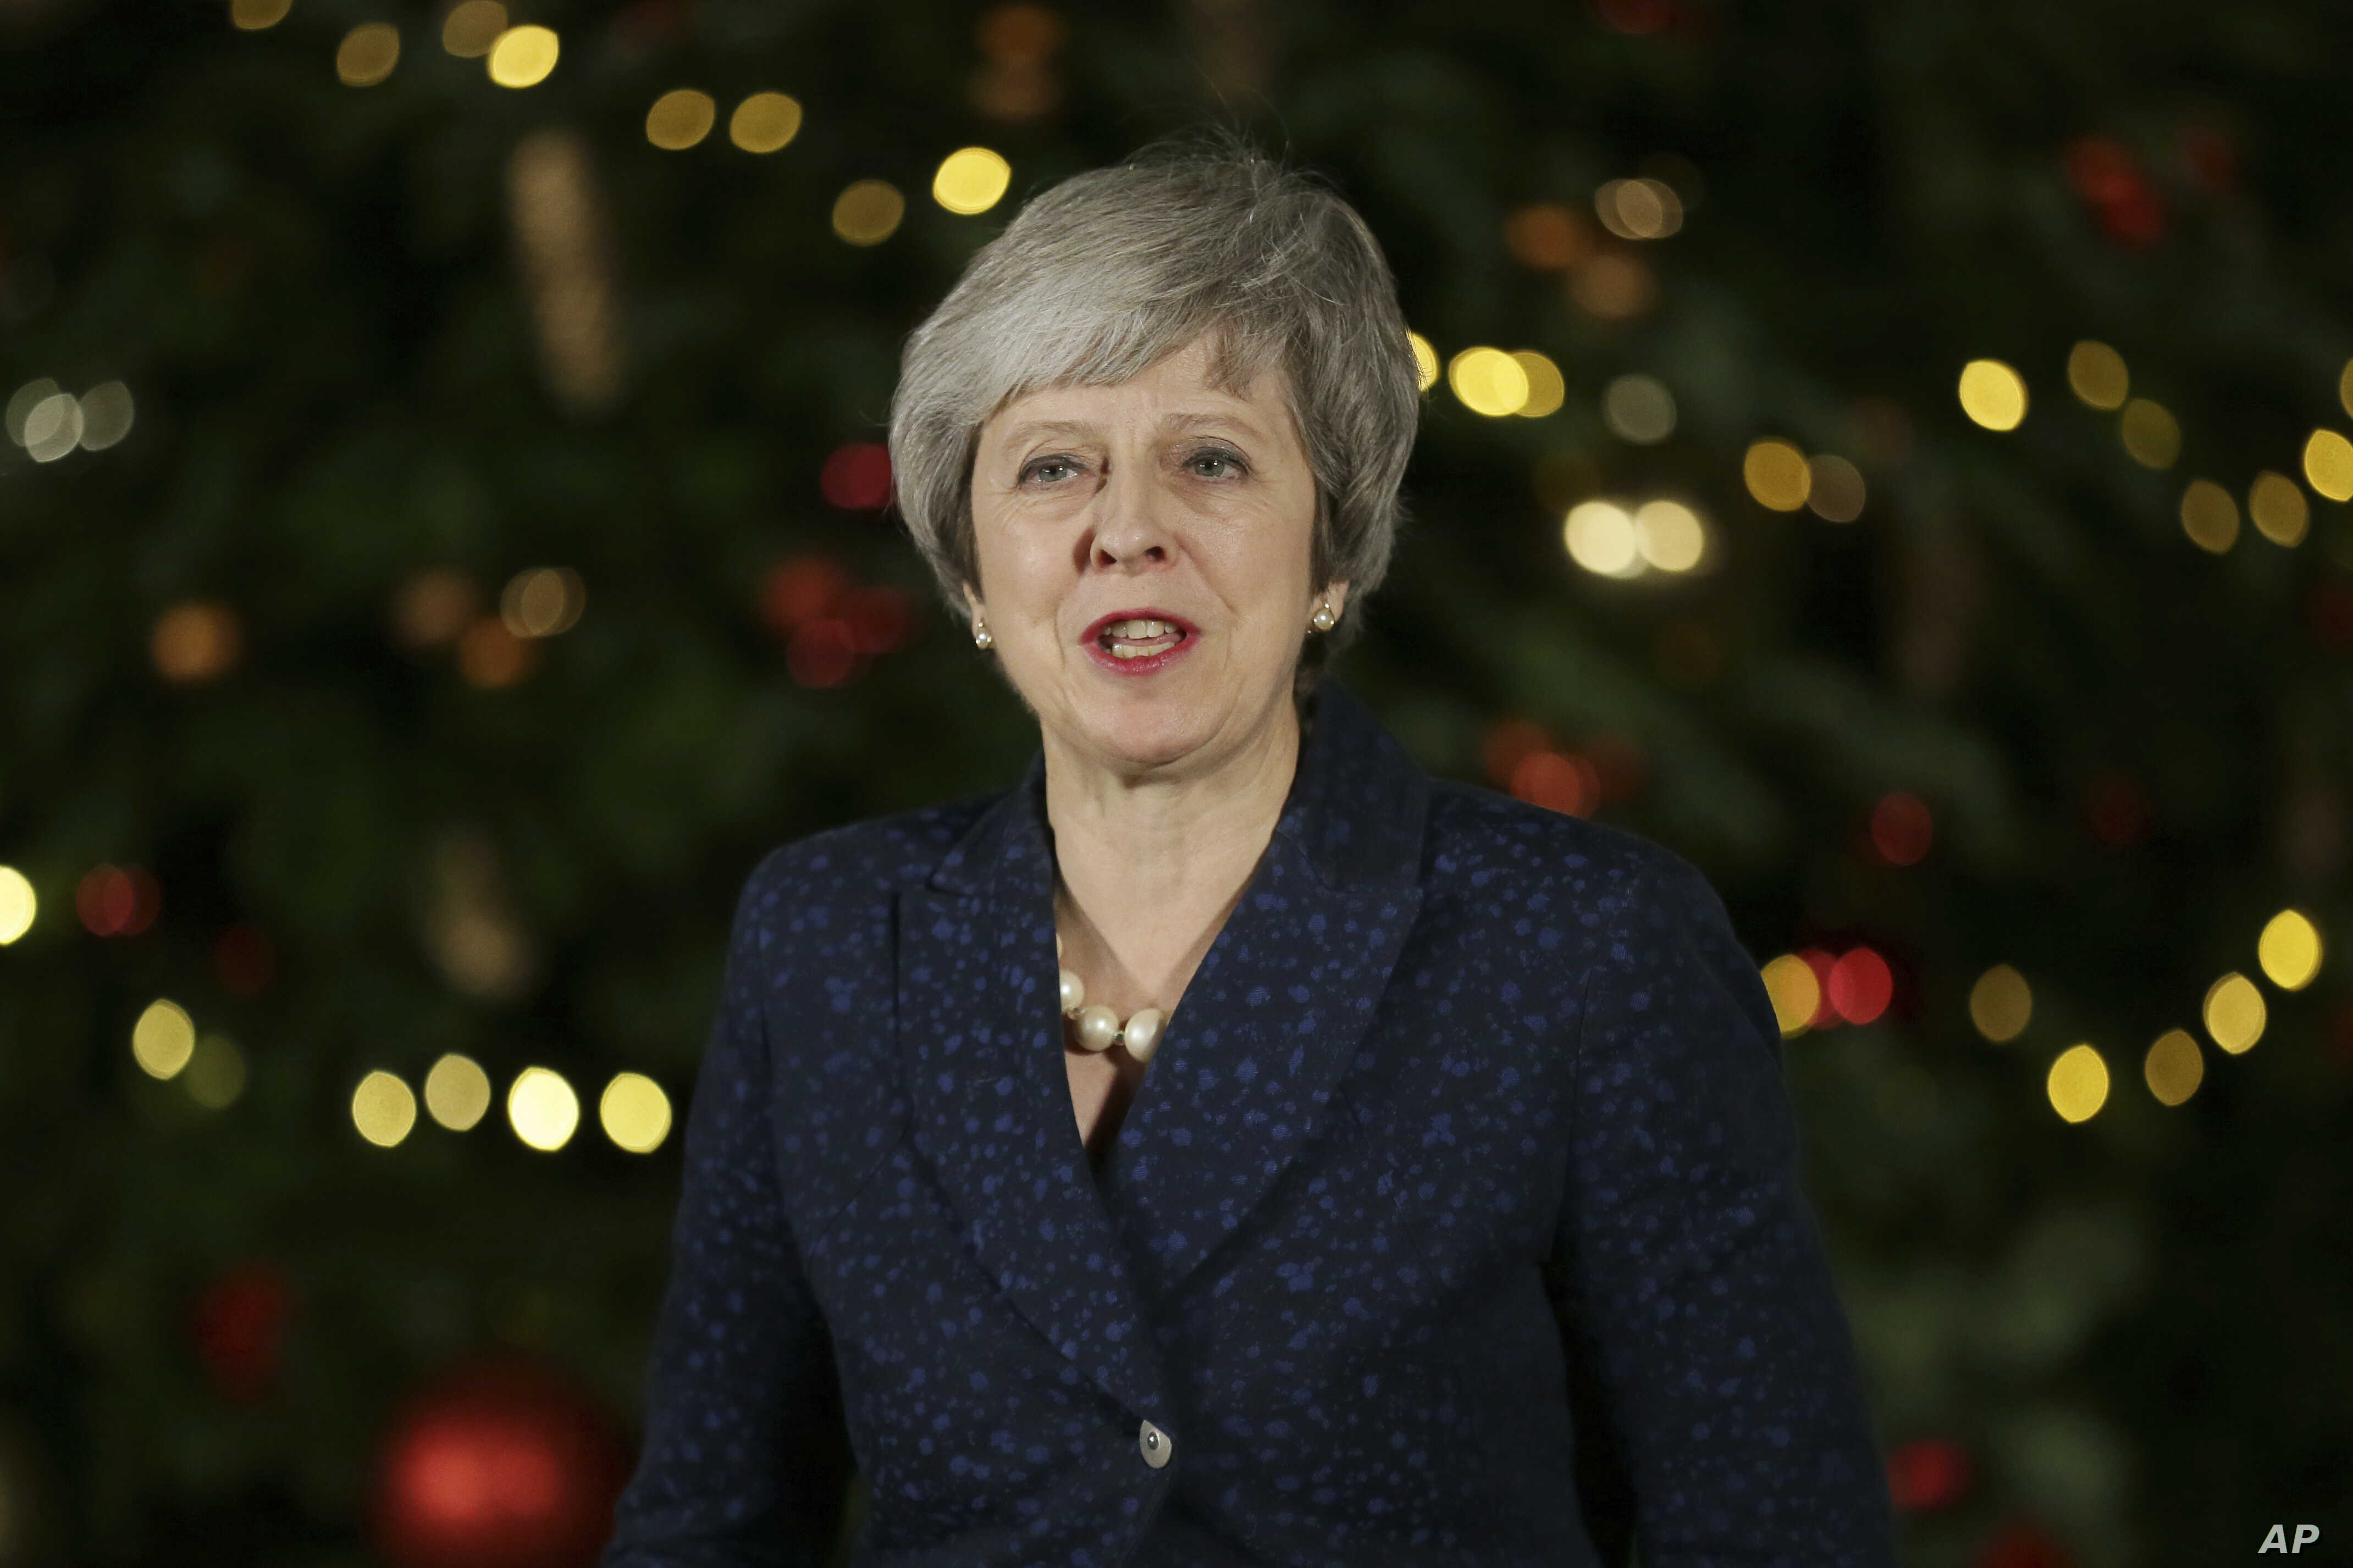 British Prime Minister Theresa May makes a statement outside 10 Downing Street, in London, Dec. 12, 2018. British Prime Minister Theresa May survived a brush with political mortality Wednesday, winning a no-confidence vote of her Conservative lawmake...